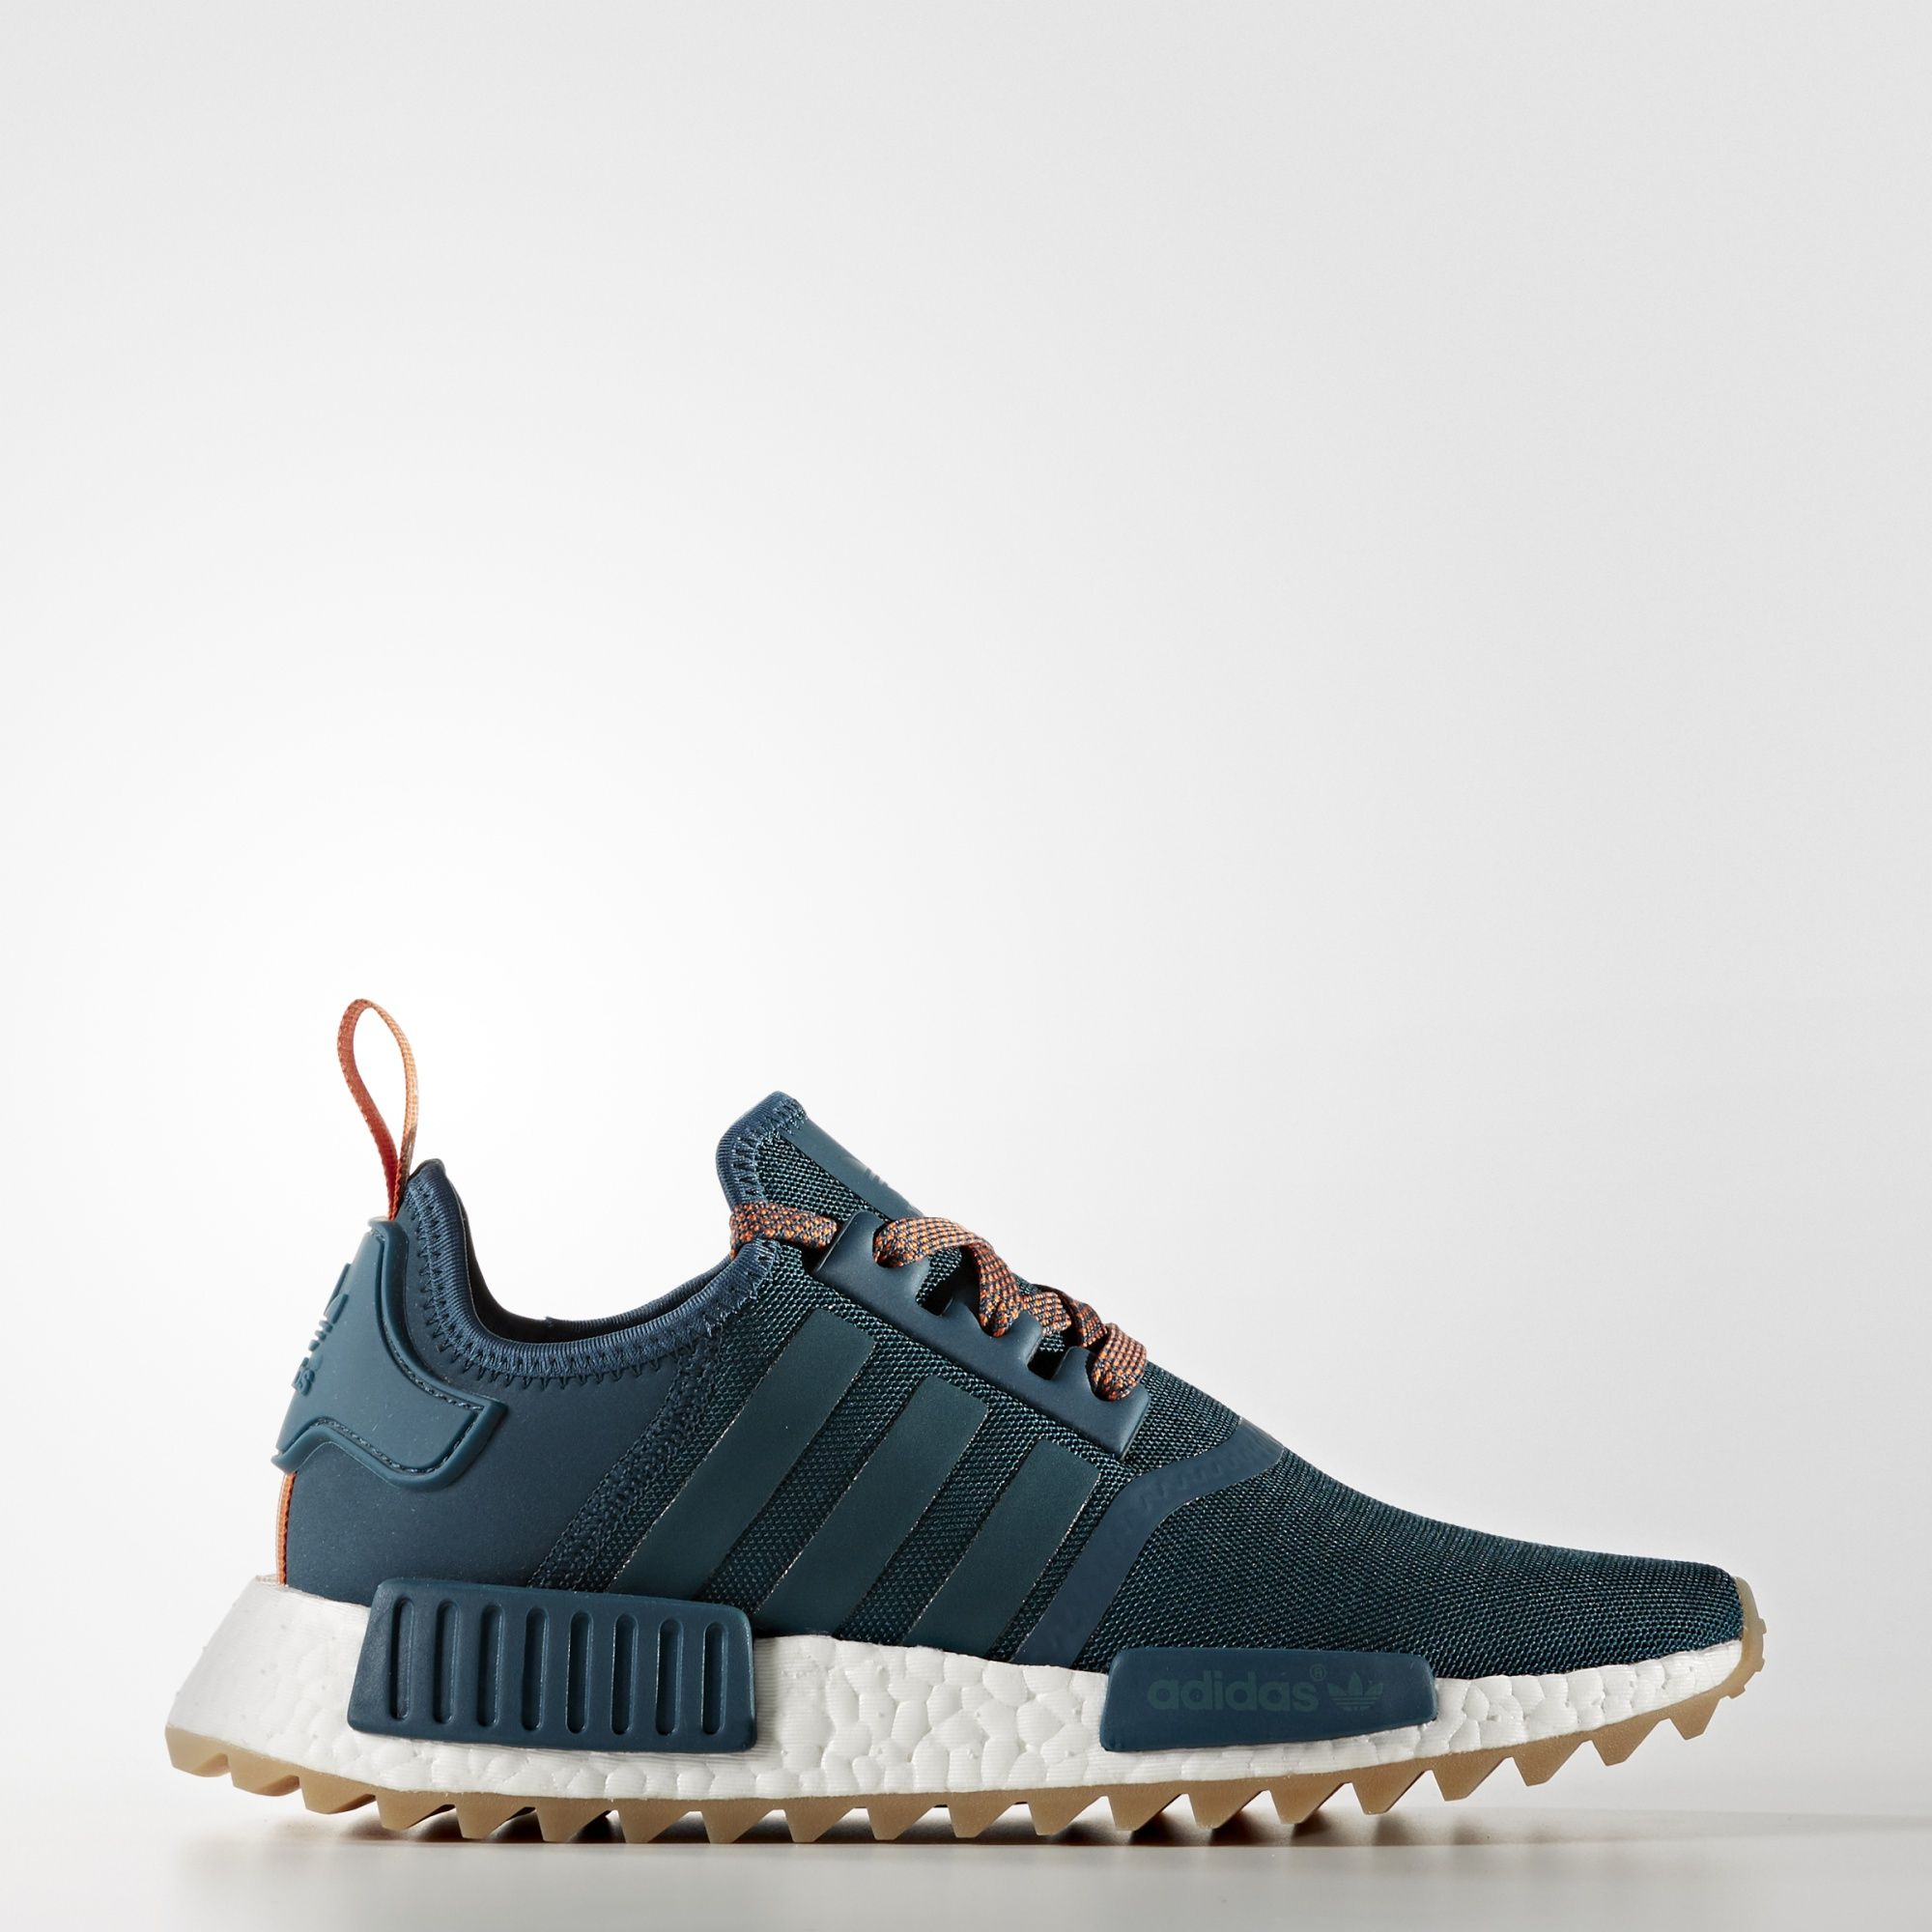 Referencing Celebrated Styles Nmd Sneakers Take Archival